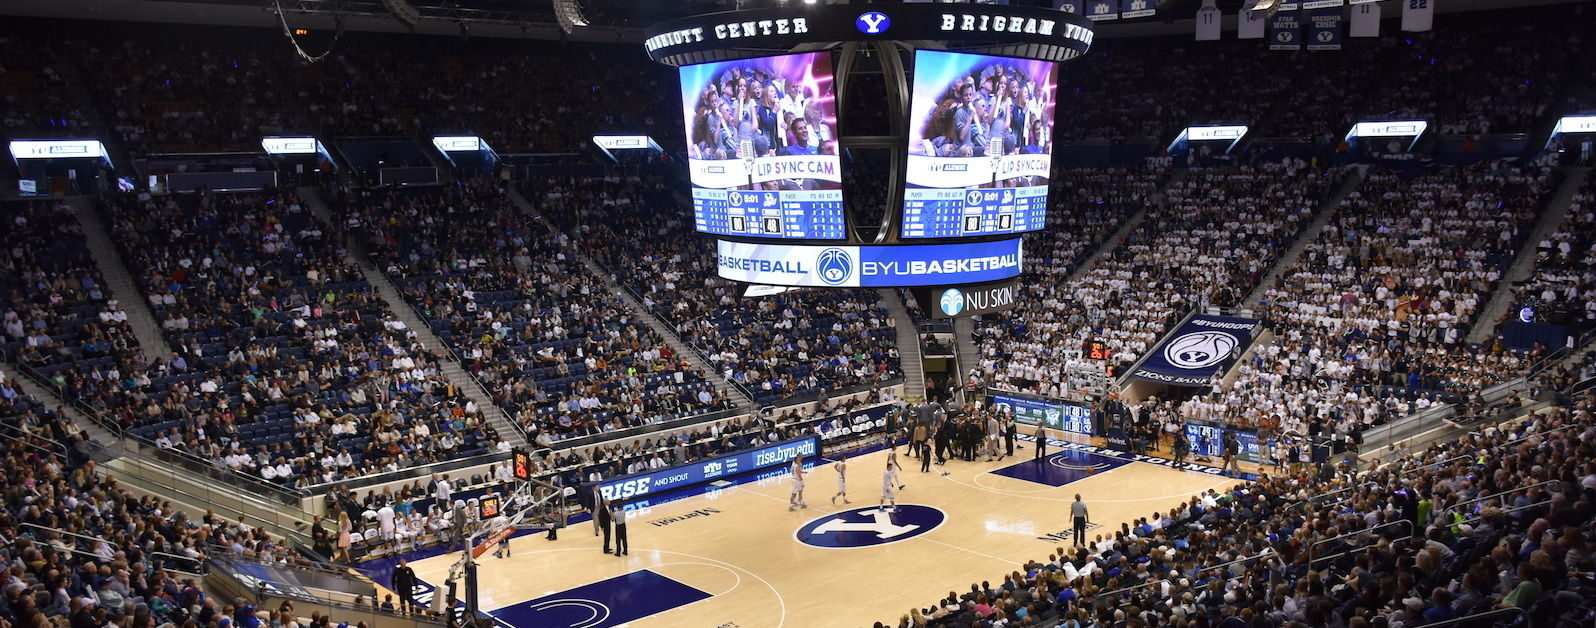 Anthony James Partners, AJP, Brigham Young University, BYU, High-density Wi-Fi, WiFi, DAS, WiFi/DAS, Aruba Wi-Fi, in-game app, Marriott Center, arena, College Sports, collegiate sports, basketball, led display, videoboard, video board, scoreboard, center hung, centerhung, center-hung, NCAA, men's basketball, intercollegiate, AV Consultant, A/V consultant, Owner's Representative, scoreboard, LED displays, Broadcast Cabling, Infrastructure Cabling, Control Room, Arena Audio, Arena Sound Reinforcement, Stadium Sound Reinforcement, College Football, Cougars, BYU Cougars, Lavell Edwards, High Density Wi-Fi